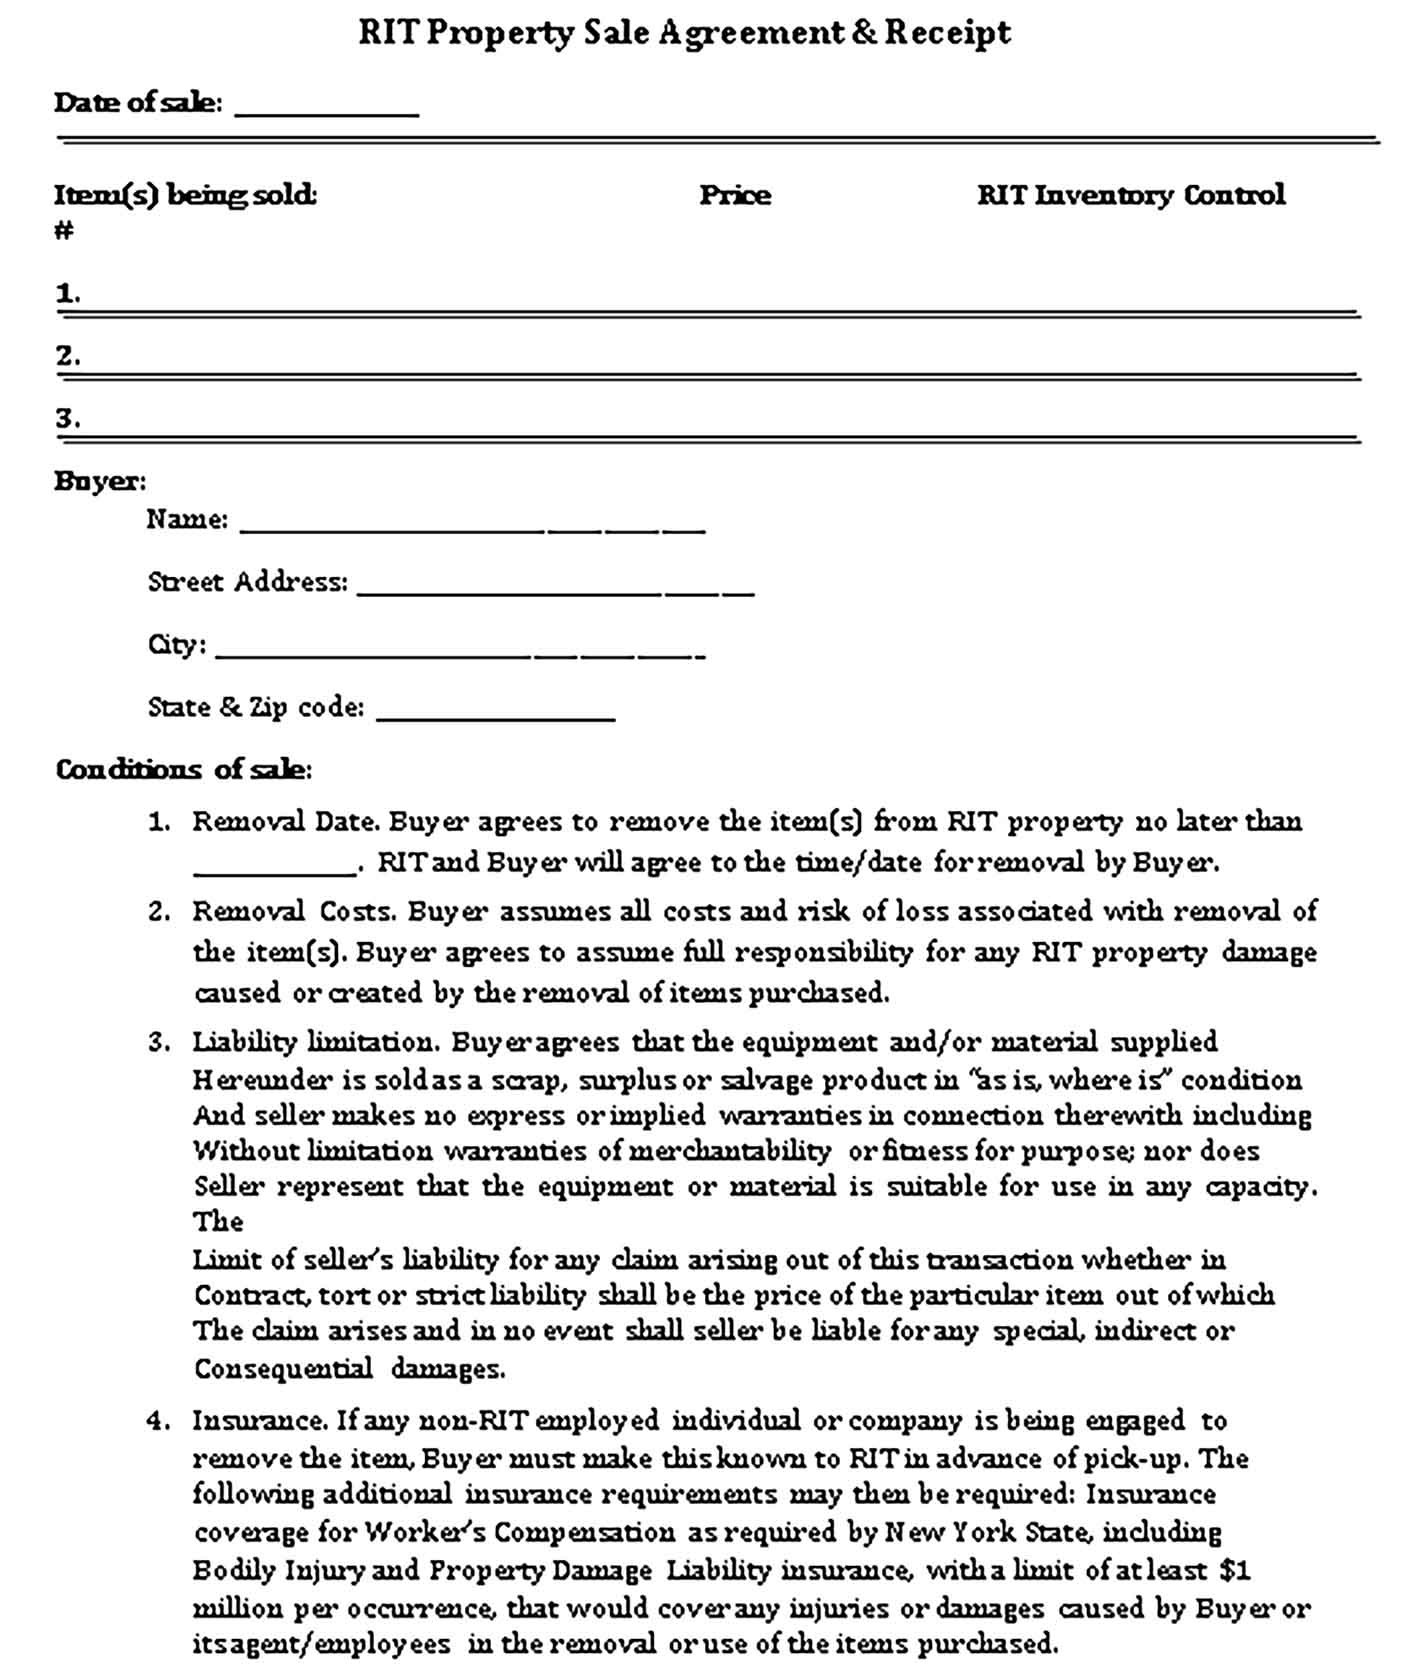 Sample Property Sale Agreement Receipt Templates